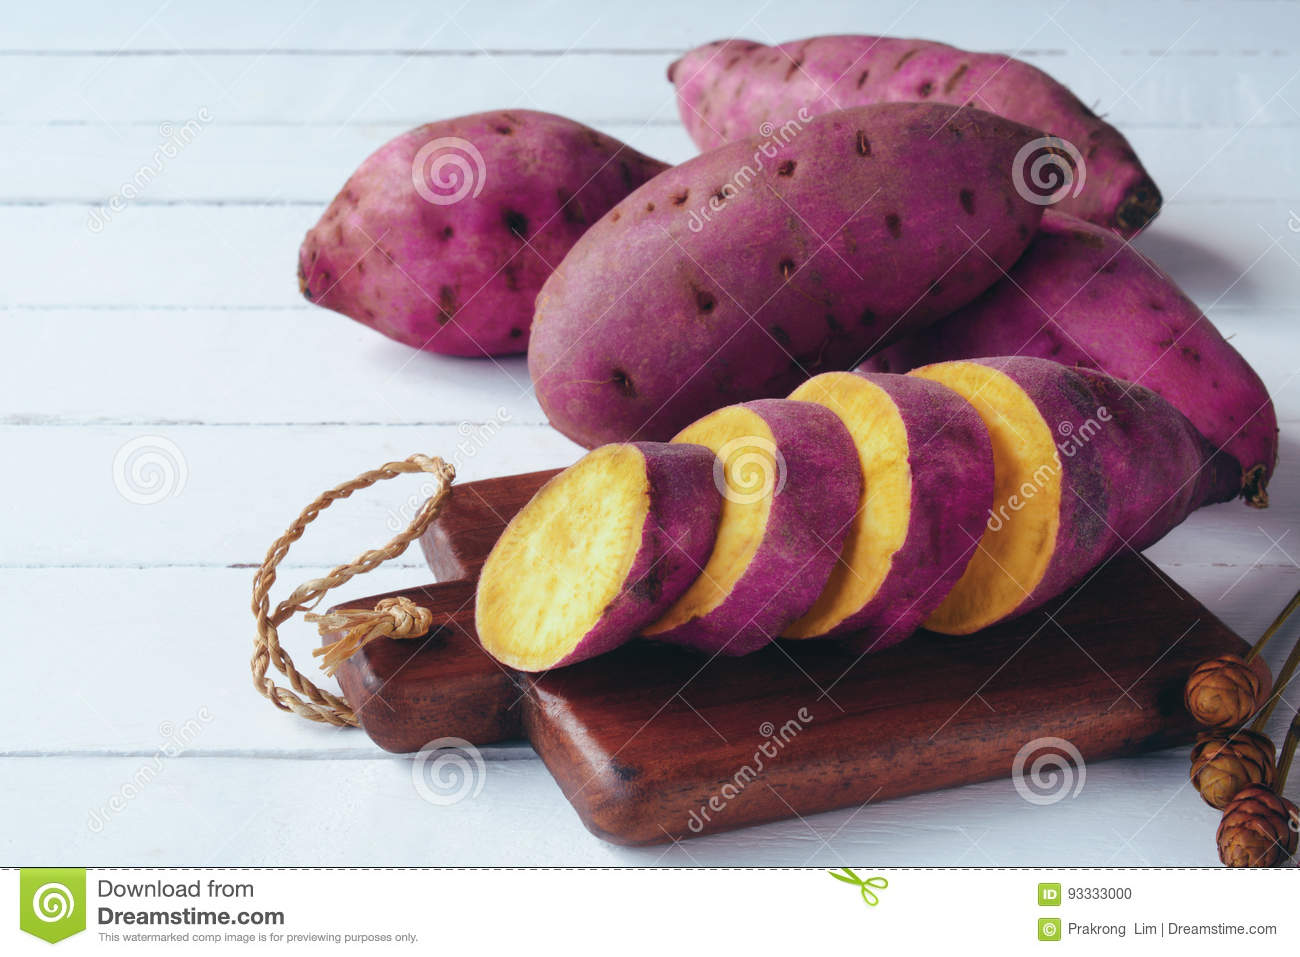 Sweet potatoes stock photo  Image of root, skin, group